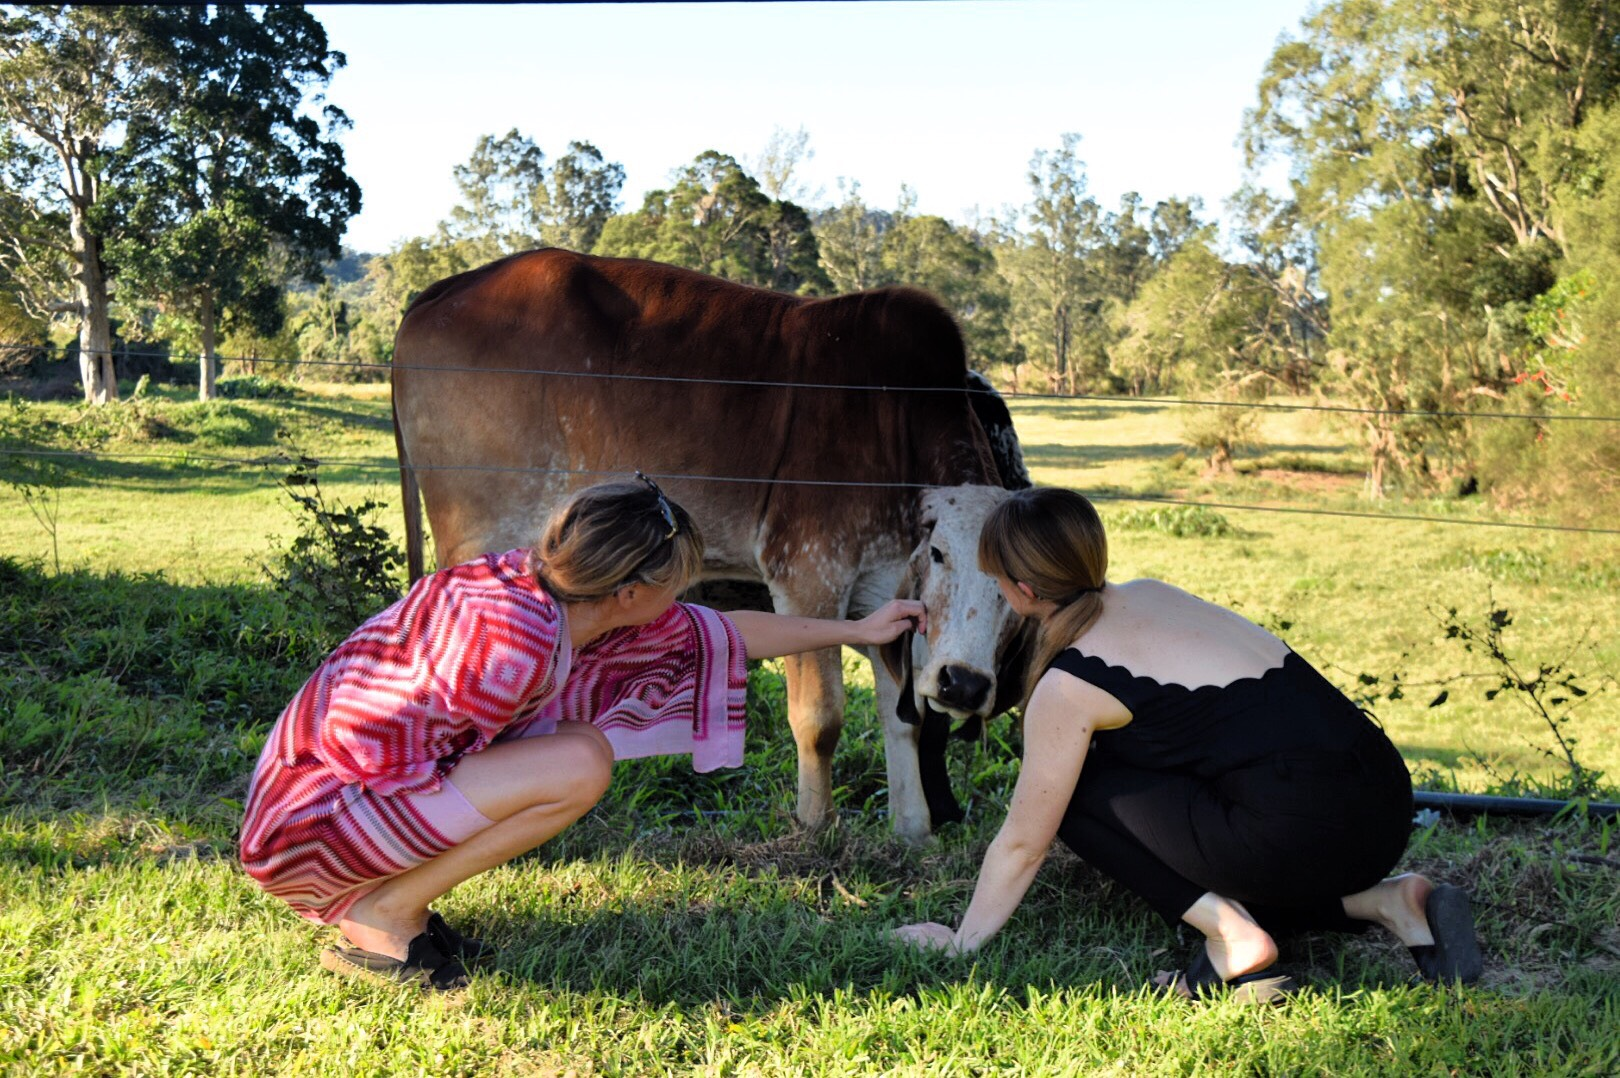 Julia and Lauren are sharing some love on the farm